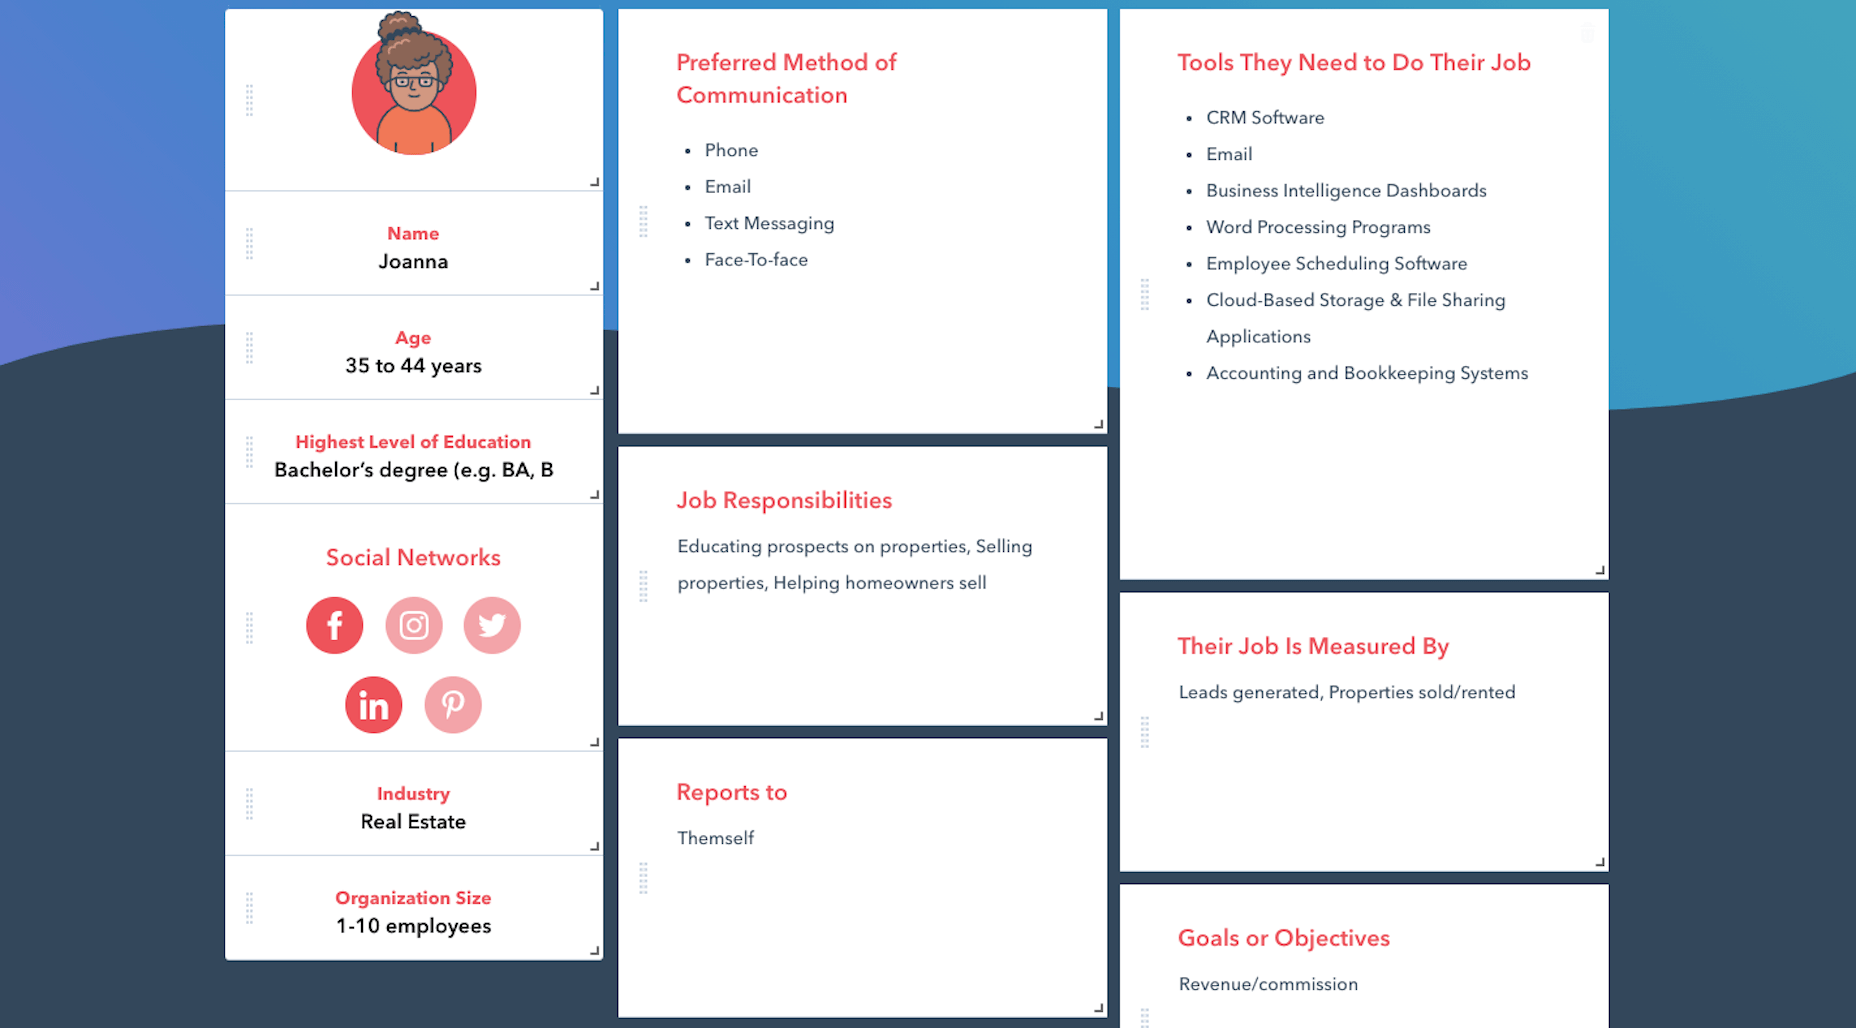 An example user persona card generated using Hubspot's Make Your Persona generator